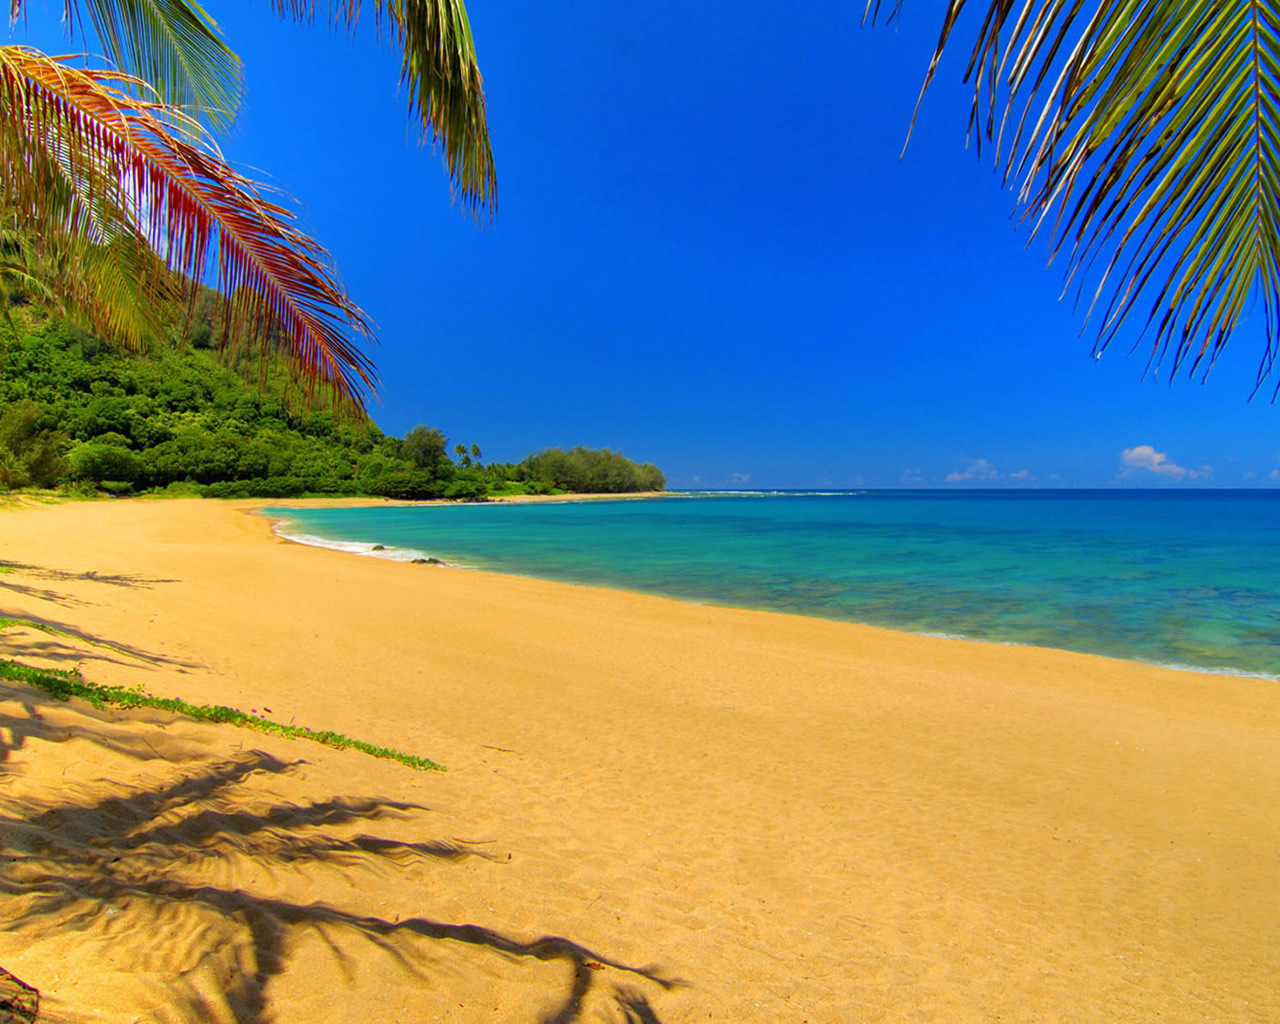 Windows Summer Desktop Wallpapers